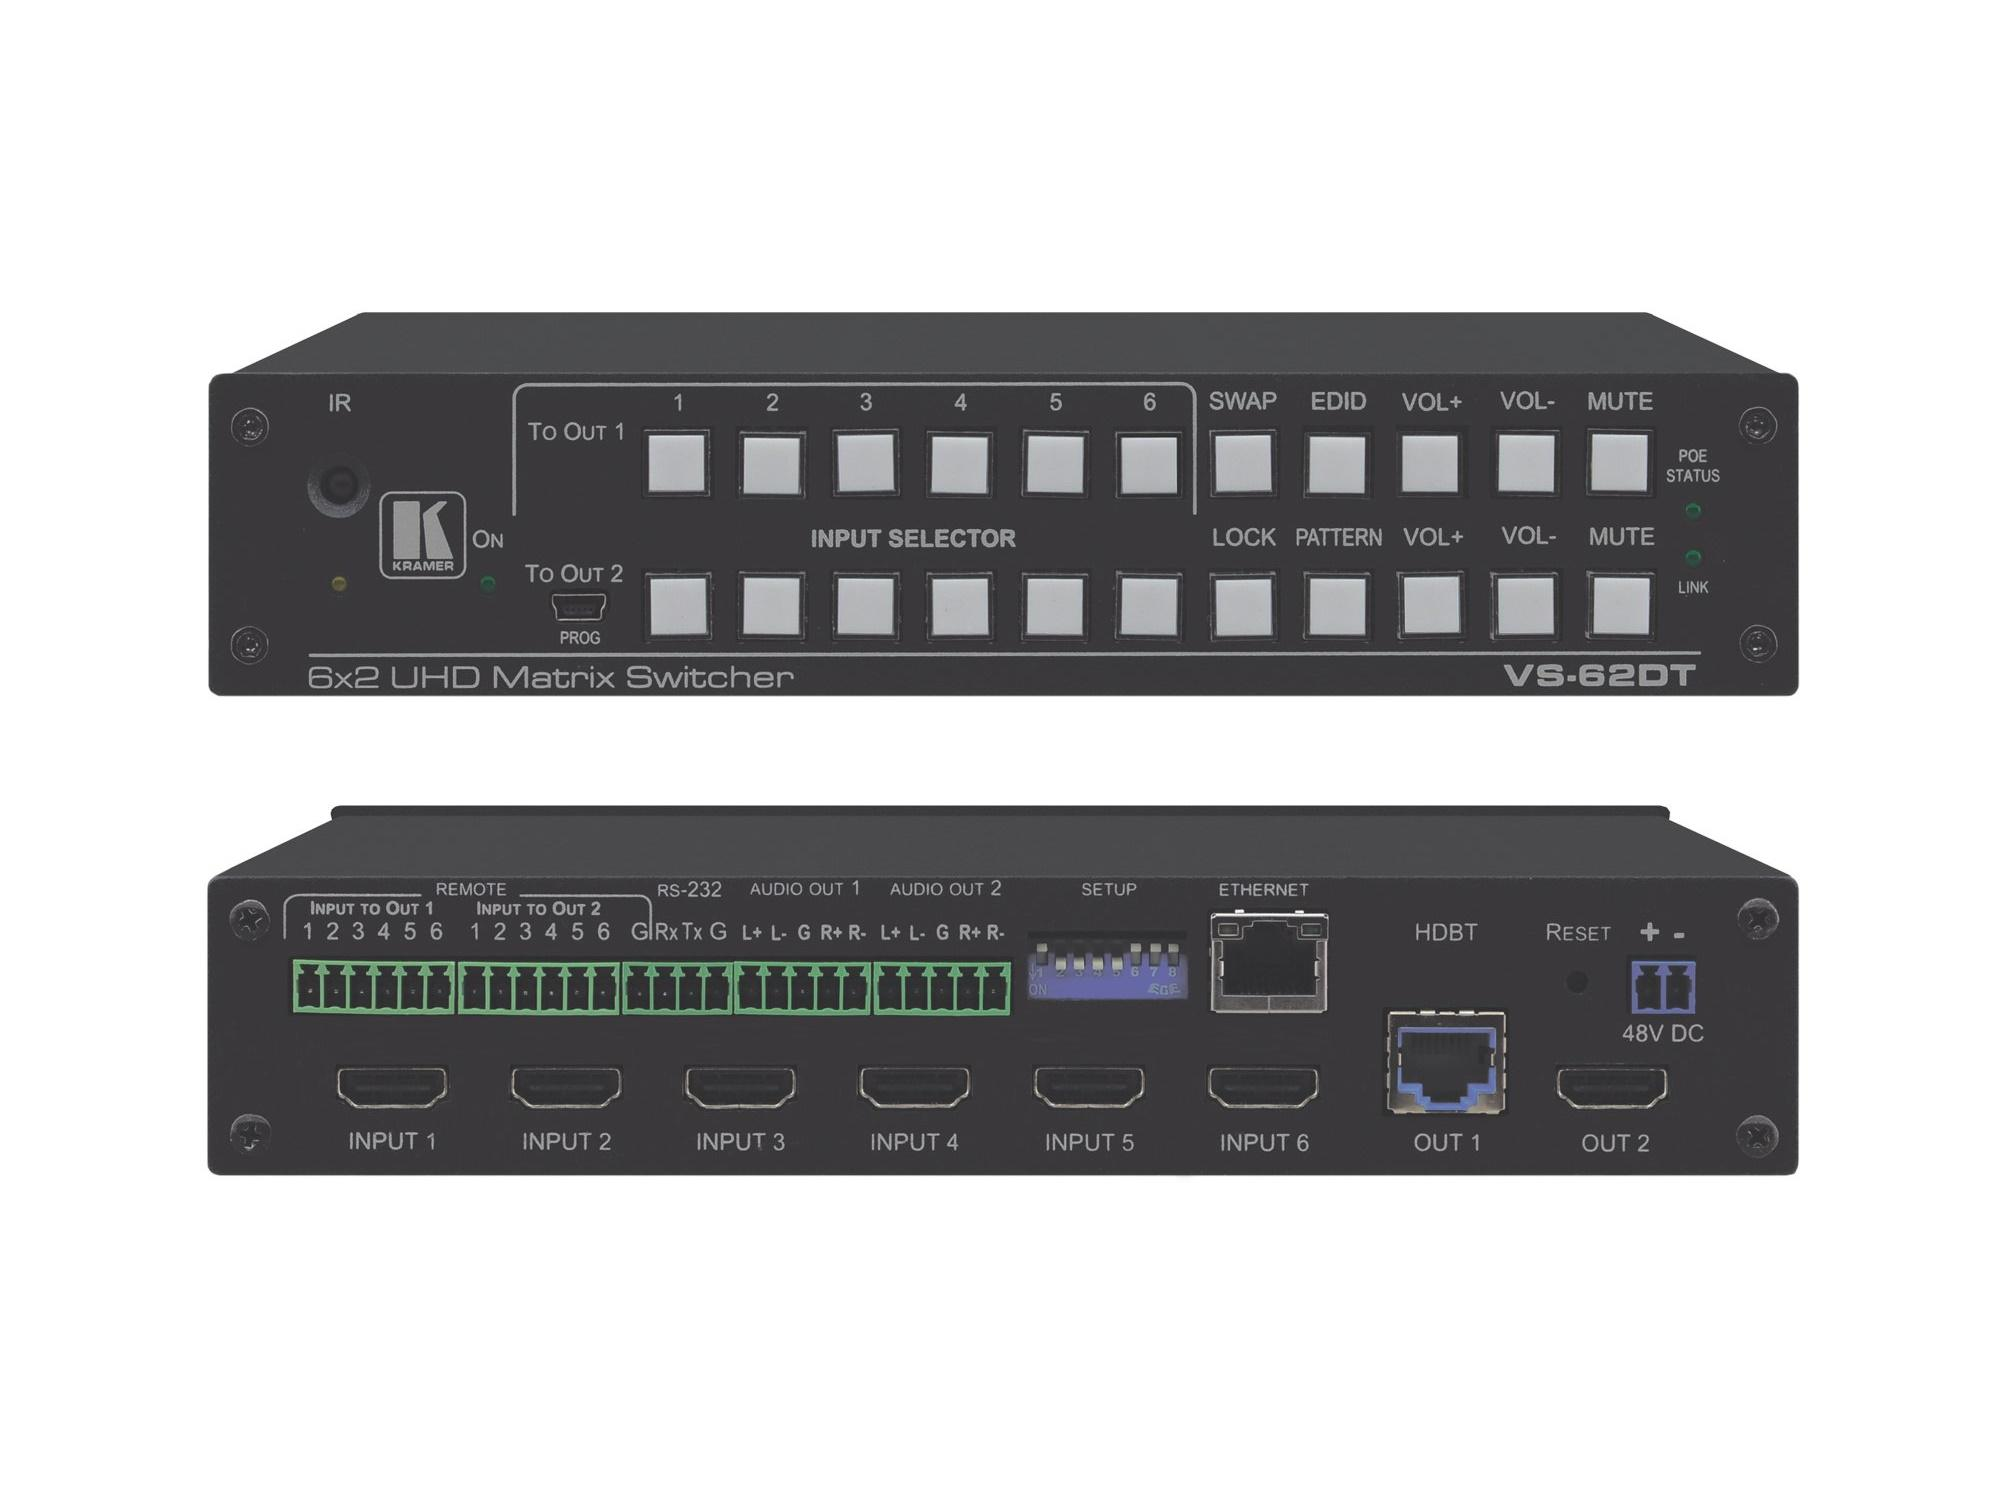 VS-62DT 6x2 4K/60 4x2x0 HDMI/HDBaseT Long-Reach PoE Matrix Switcher by Kramer